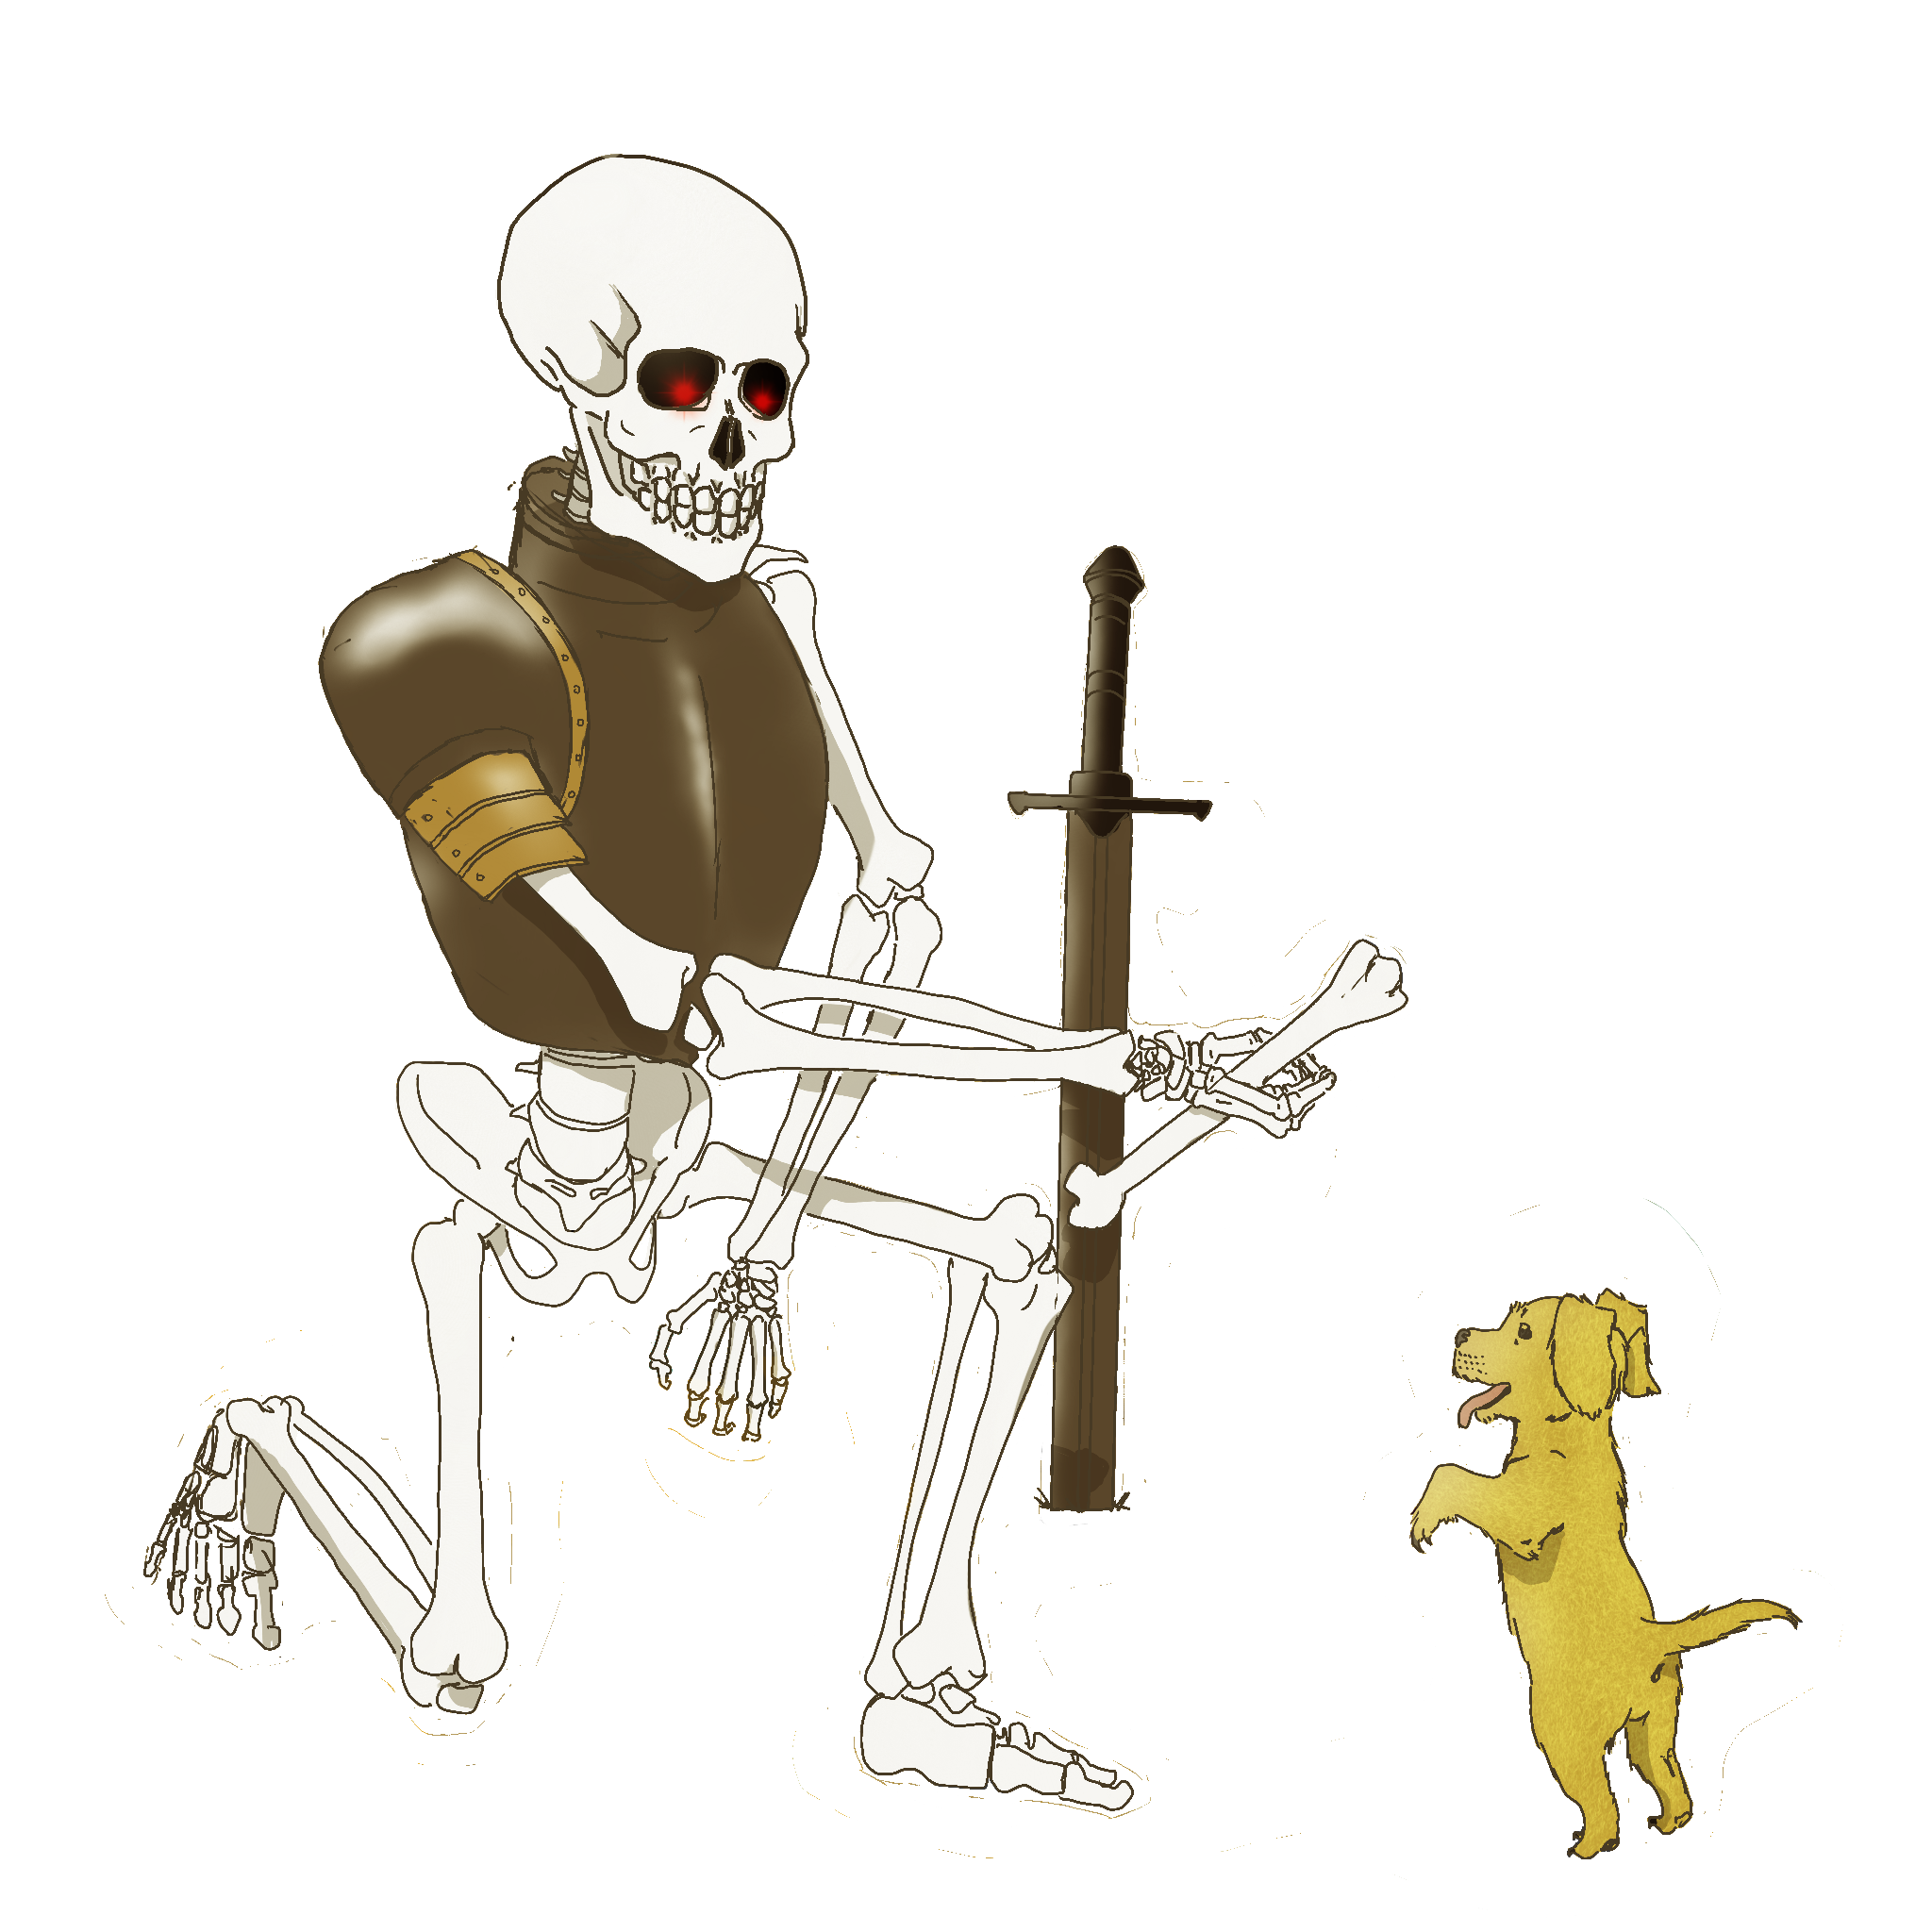 The Skeleton and puppy